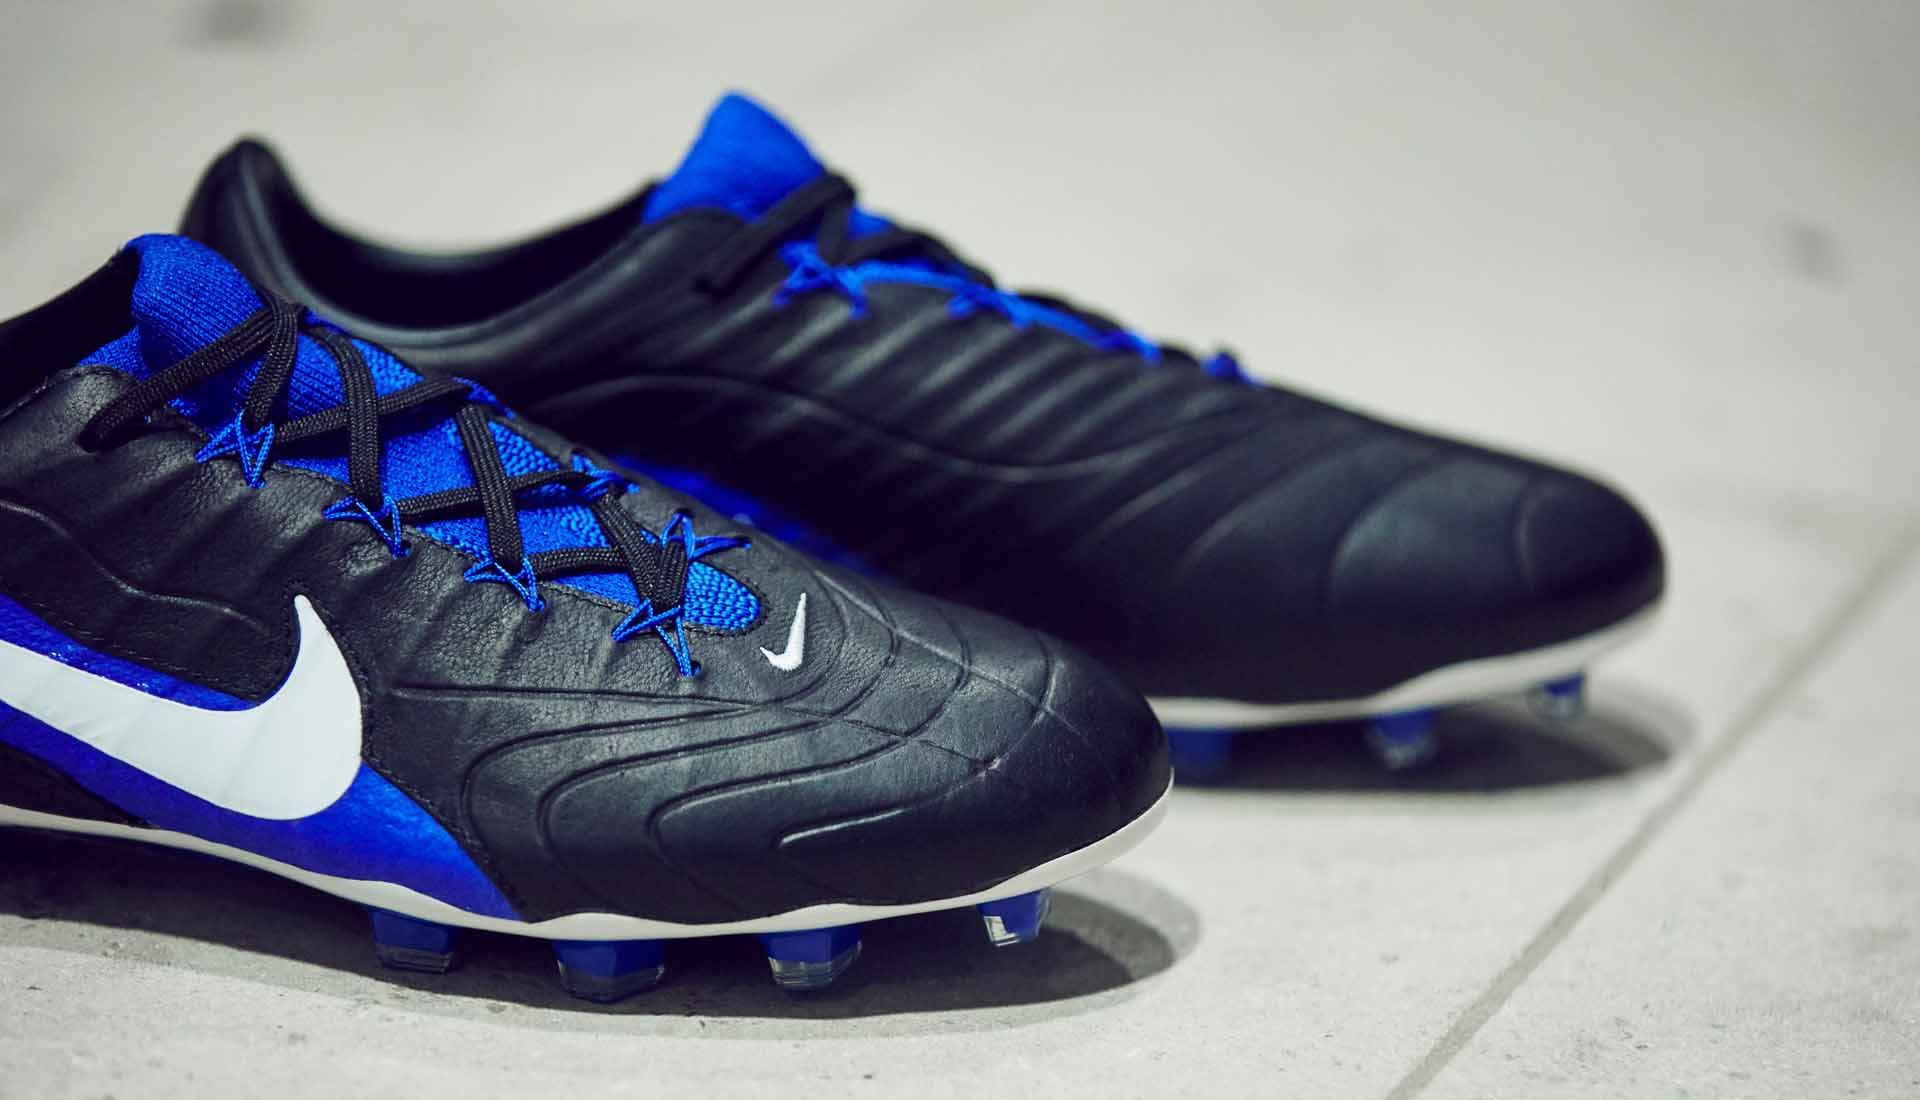 free shipping on wholesale official photos Nike Limited Edition Hypervenom GX Football Boots - SoccerBible